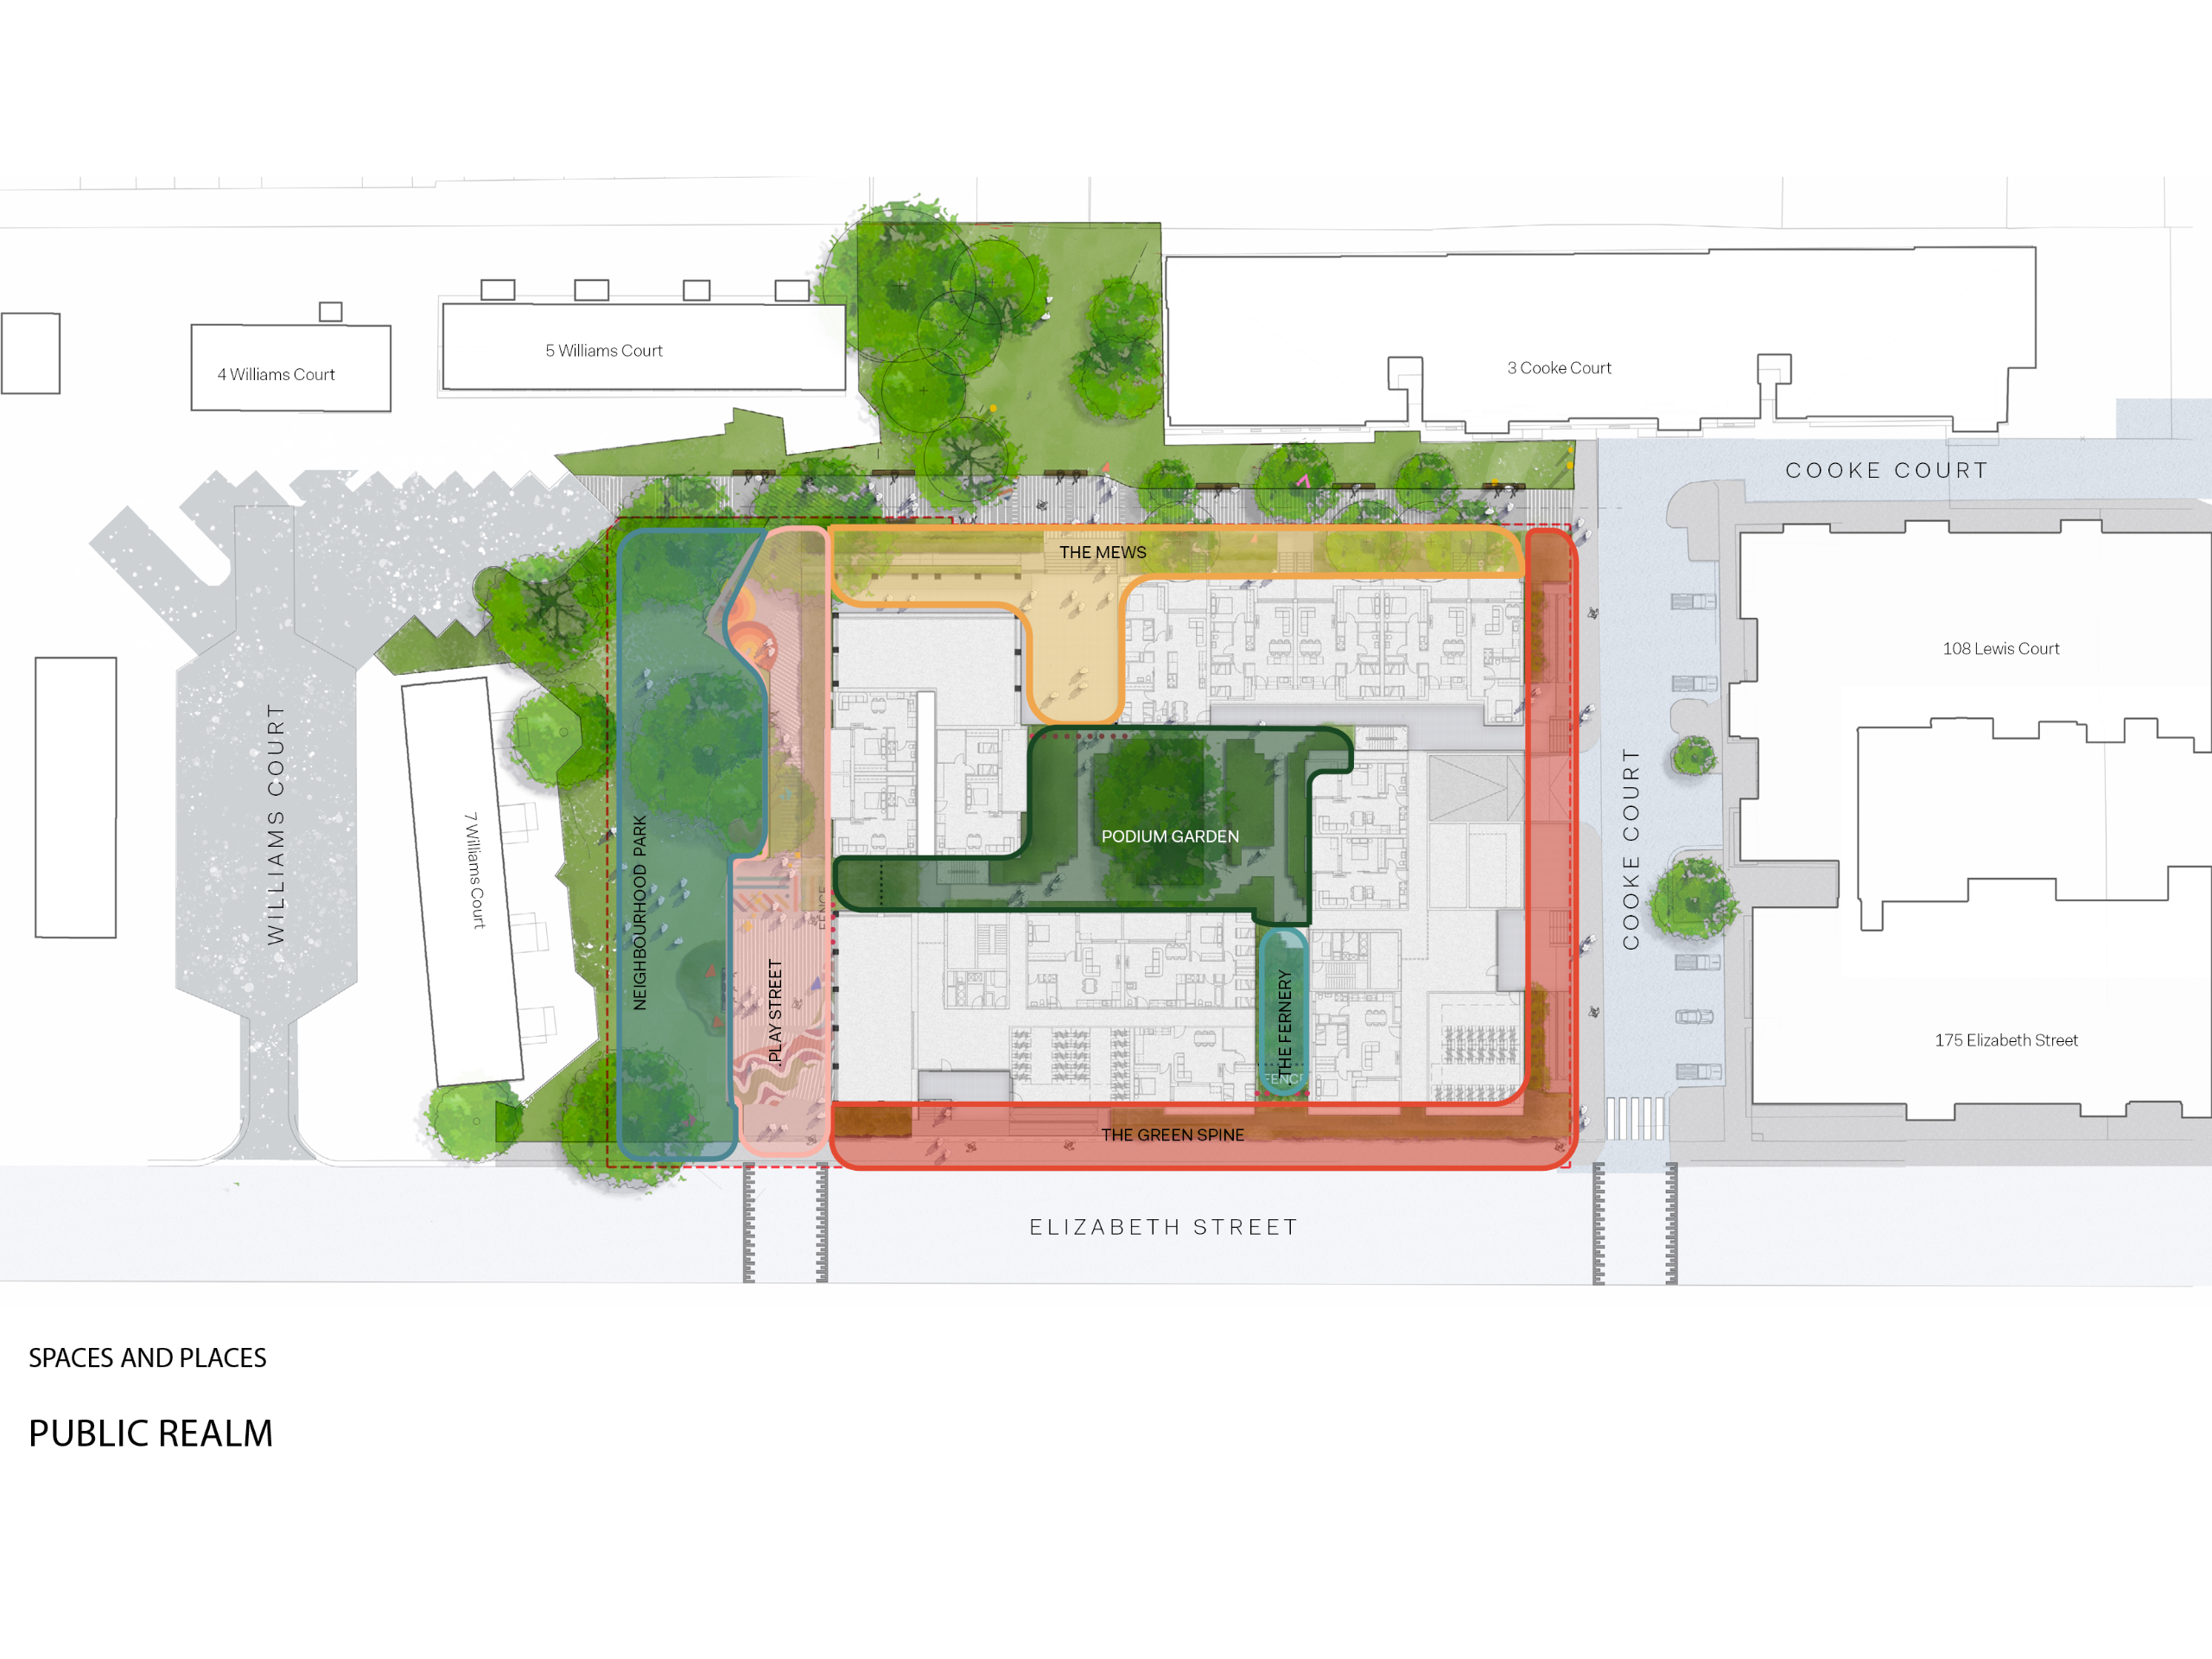 This plan shows the proposed development on the corner of Elizabeth Street and Cooke Court. Existing buildings around the proposed development are: 175 Elizabeth Street and 108 Lewis Court in the east, 3 Cooke Court, 4 and 5 Williams Court in the north and 7 Williams Court in the west. A neighbourhood park next to the existing dwelling on 7 Williams Court, west of the new development will be maintained with significant trees retained and new landscaping. An adjoining shared play street pedestrian path alongside the park will be created enabling better connection through the park for community. .  A space called The Mews will be enhanced on the north side, in between the new development and the existing pedestrian path that connects Cooke Court with Williams Court. Additional landscape will be provided to the pocket green space in between the existing dwellings on 5 Williams Court and 3 Cooke Court. The Green spine runs along the south (Elizabeth Street) and the east side (Cooke Court) of the new development, softening and greening the edge of the building and providing privacy for residents. A private resident podium garden is proposed in between the 4 proposed buildings. The Fernery connects the podium garden with The Green Spine on Elizabeth Street.